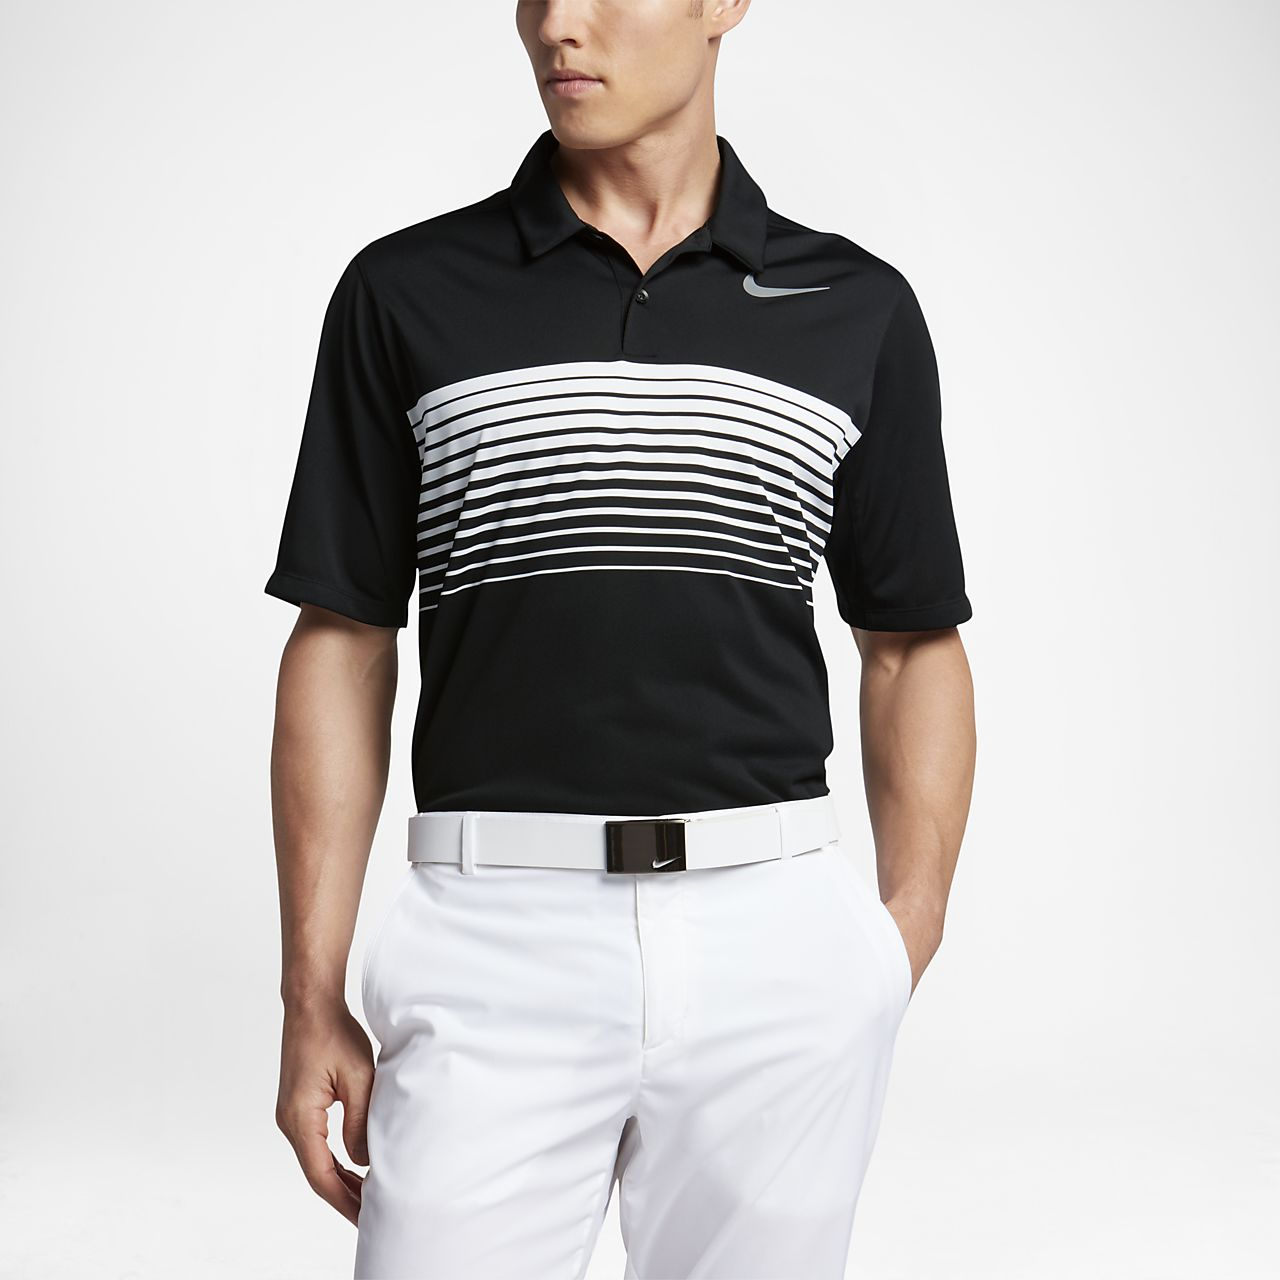 Nike Mobility Speed Stripe Men's Standard Fit Golf Polo Shirts White/Black